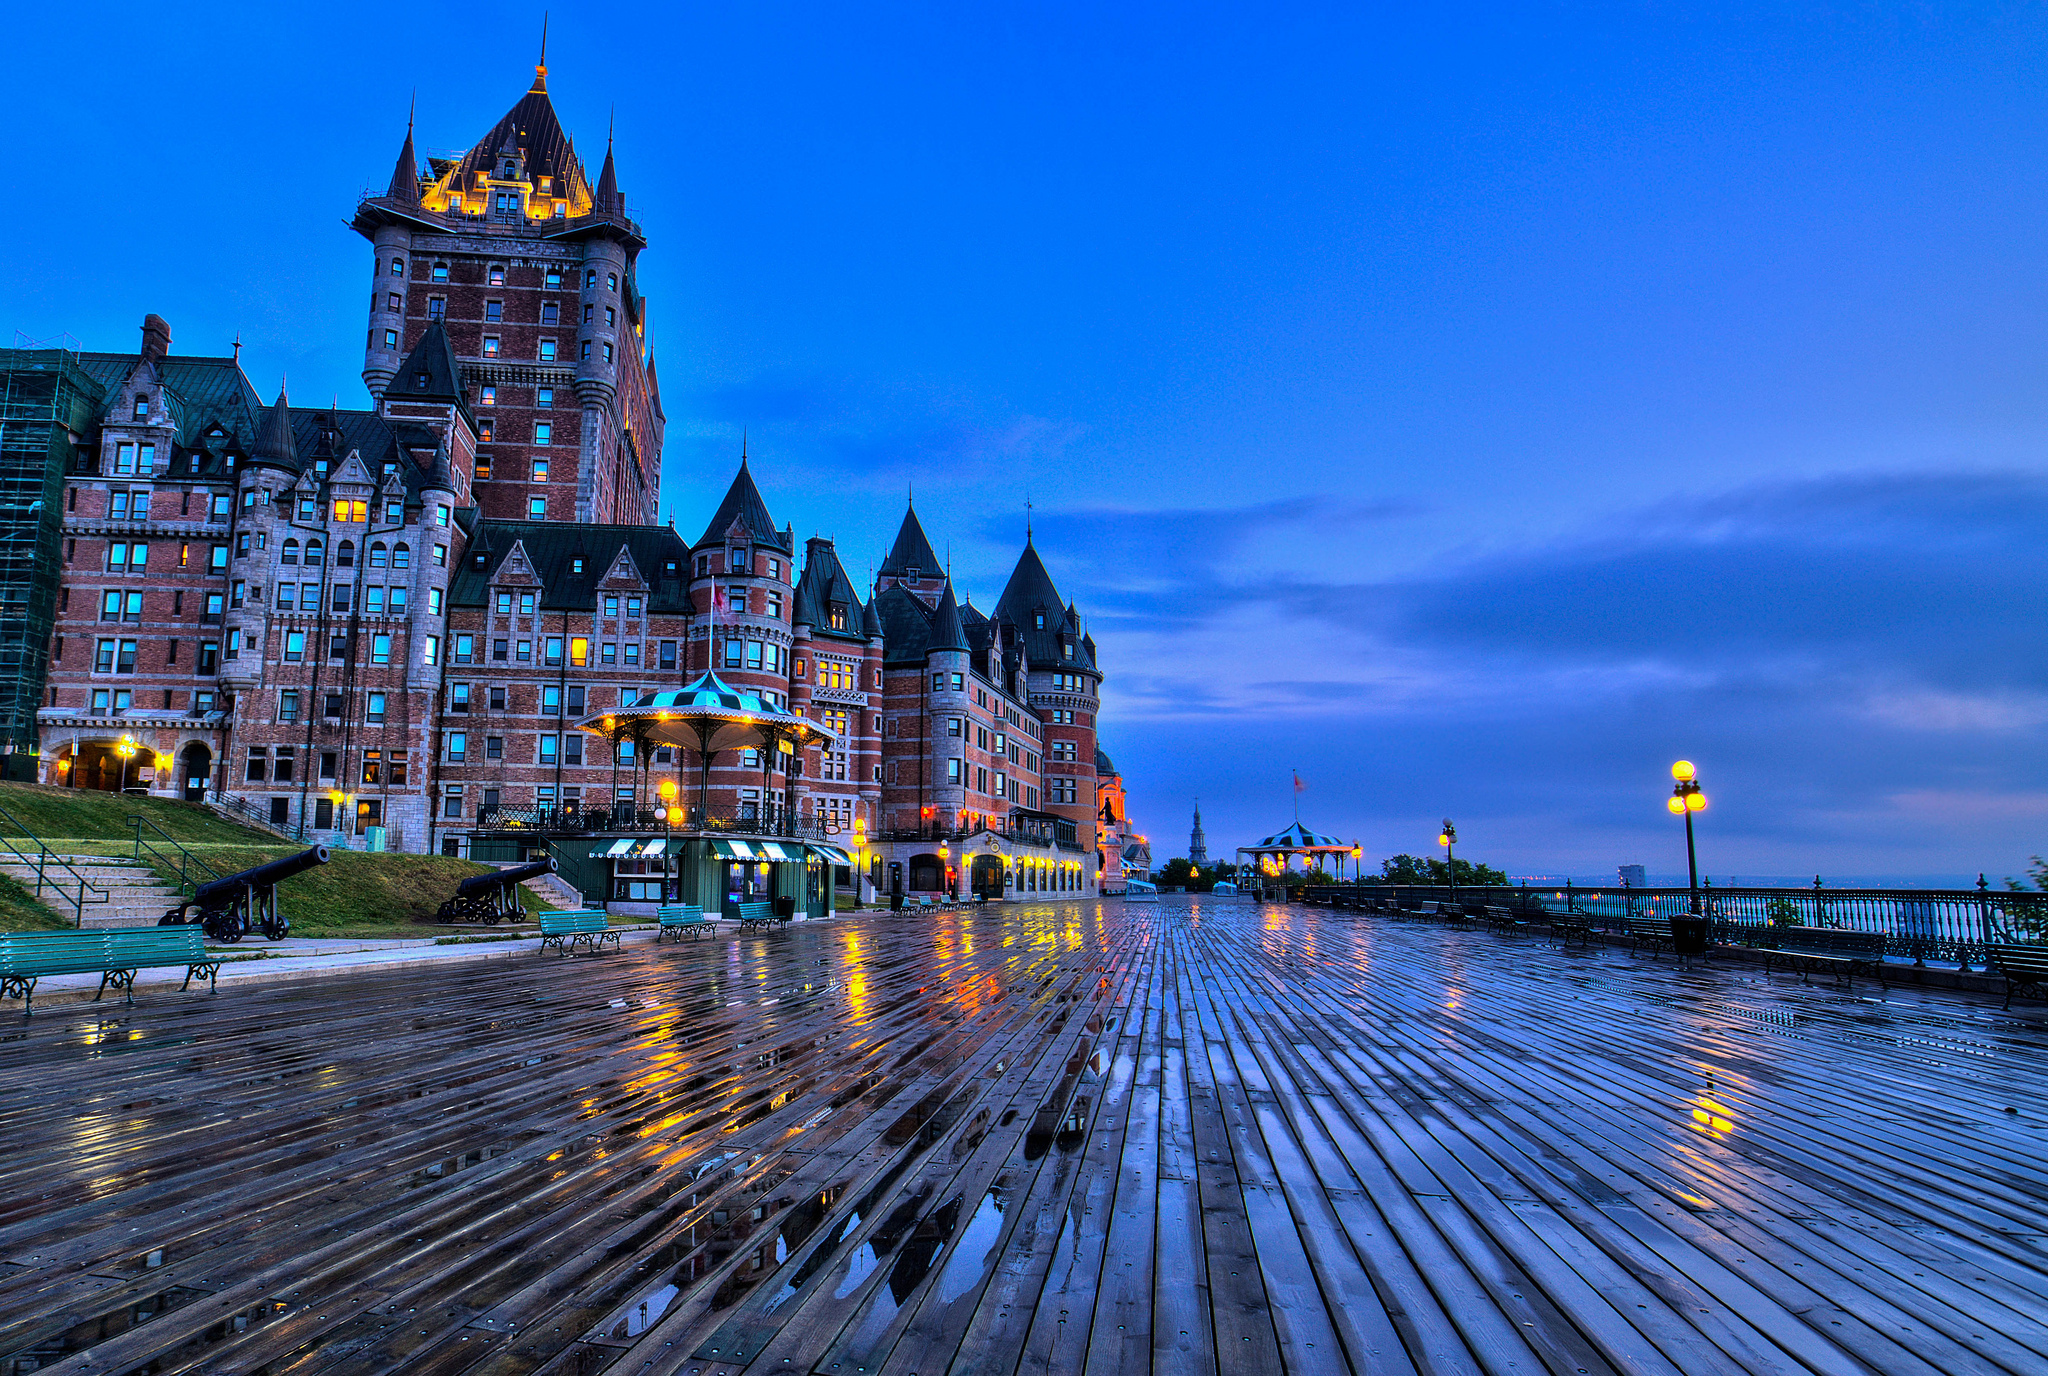 2 ch teau frontenac hd wallpapers background images for Wallpaper canada